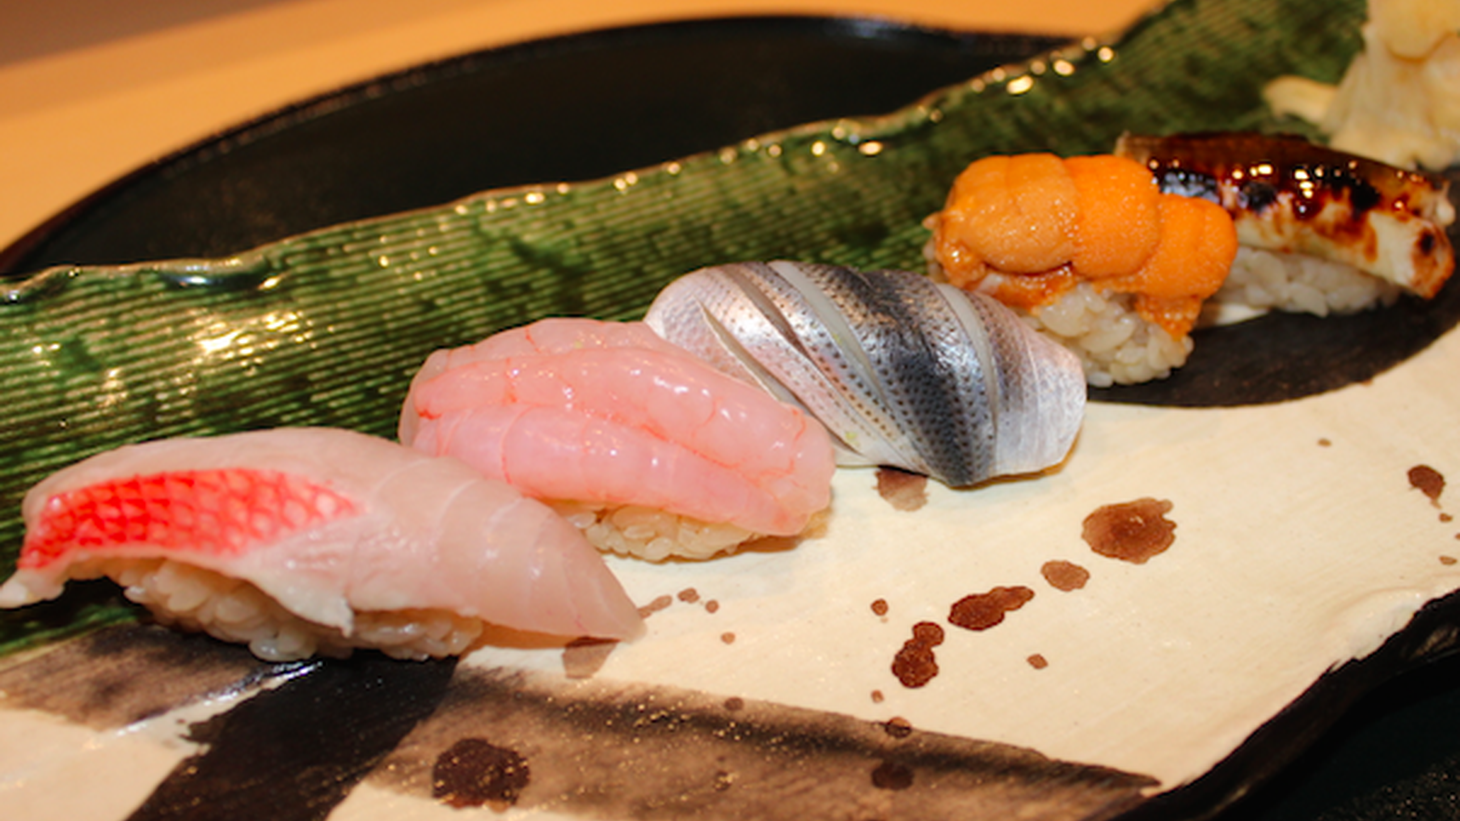 Chef Mori Onodera is serving up remarkable omakase to his loyal following of sushi aficionados.